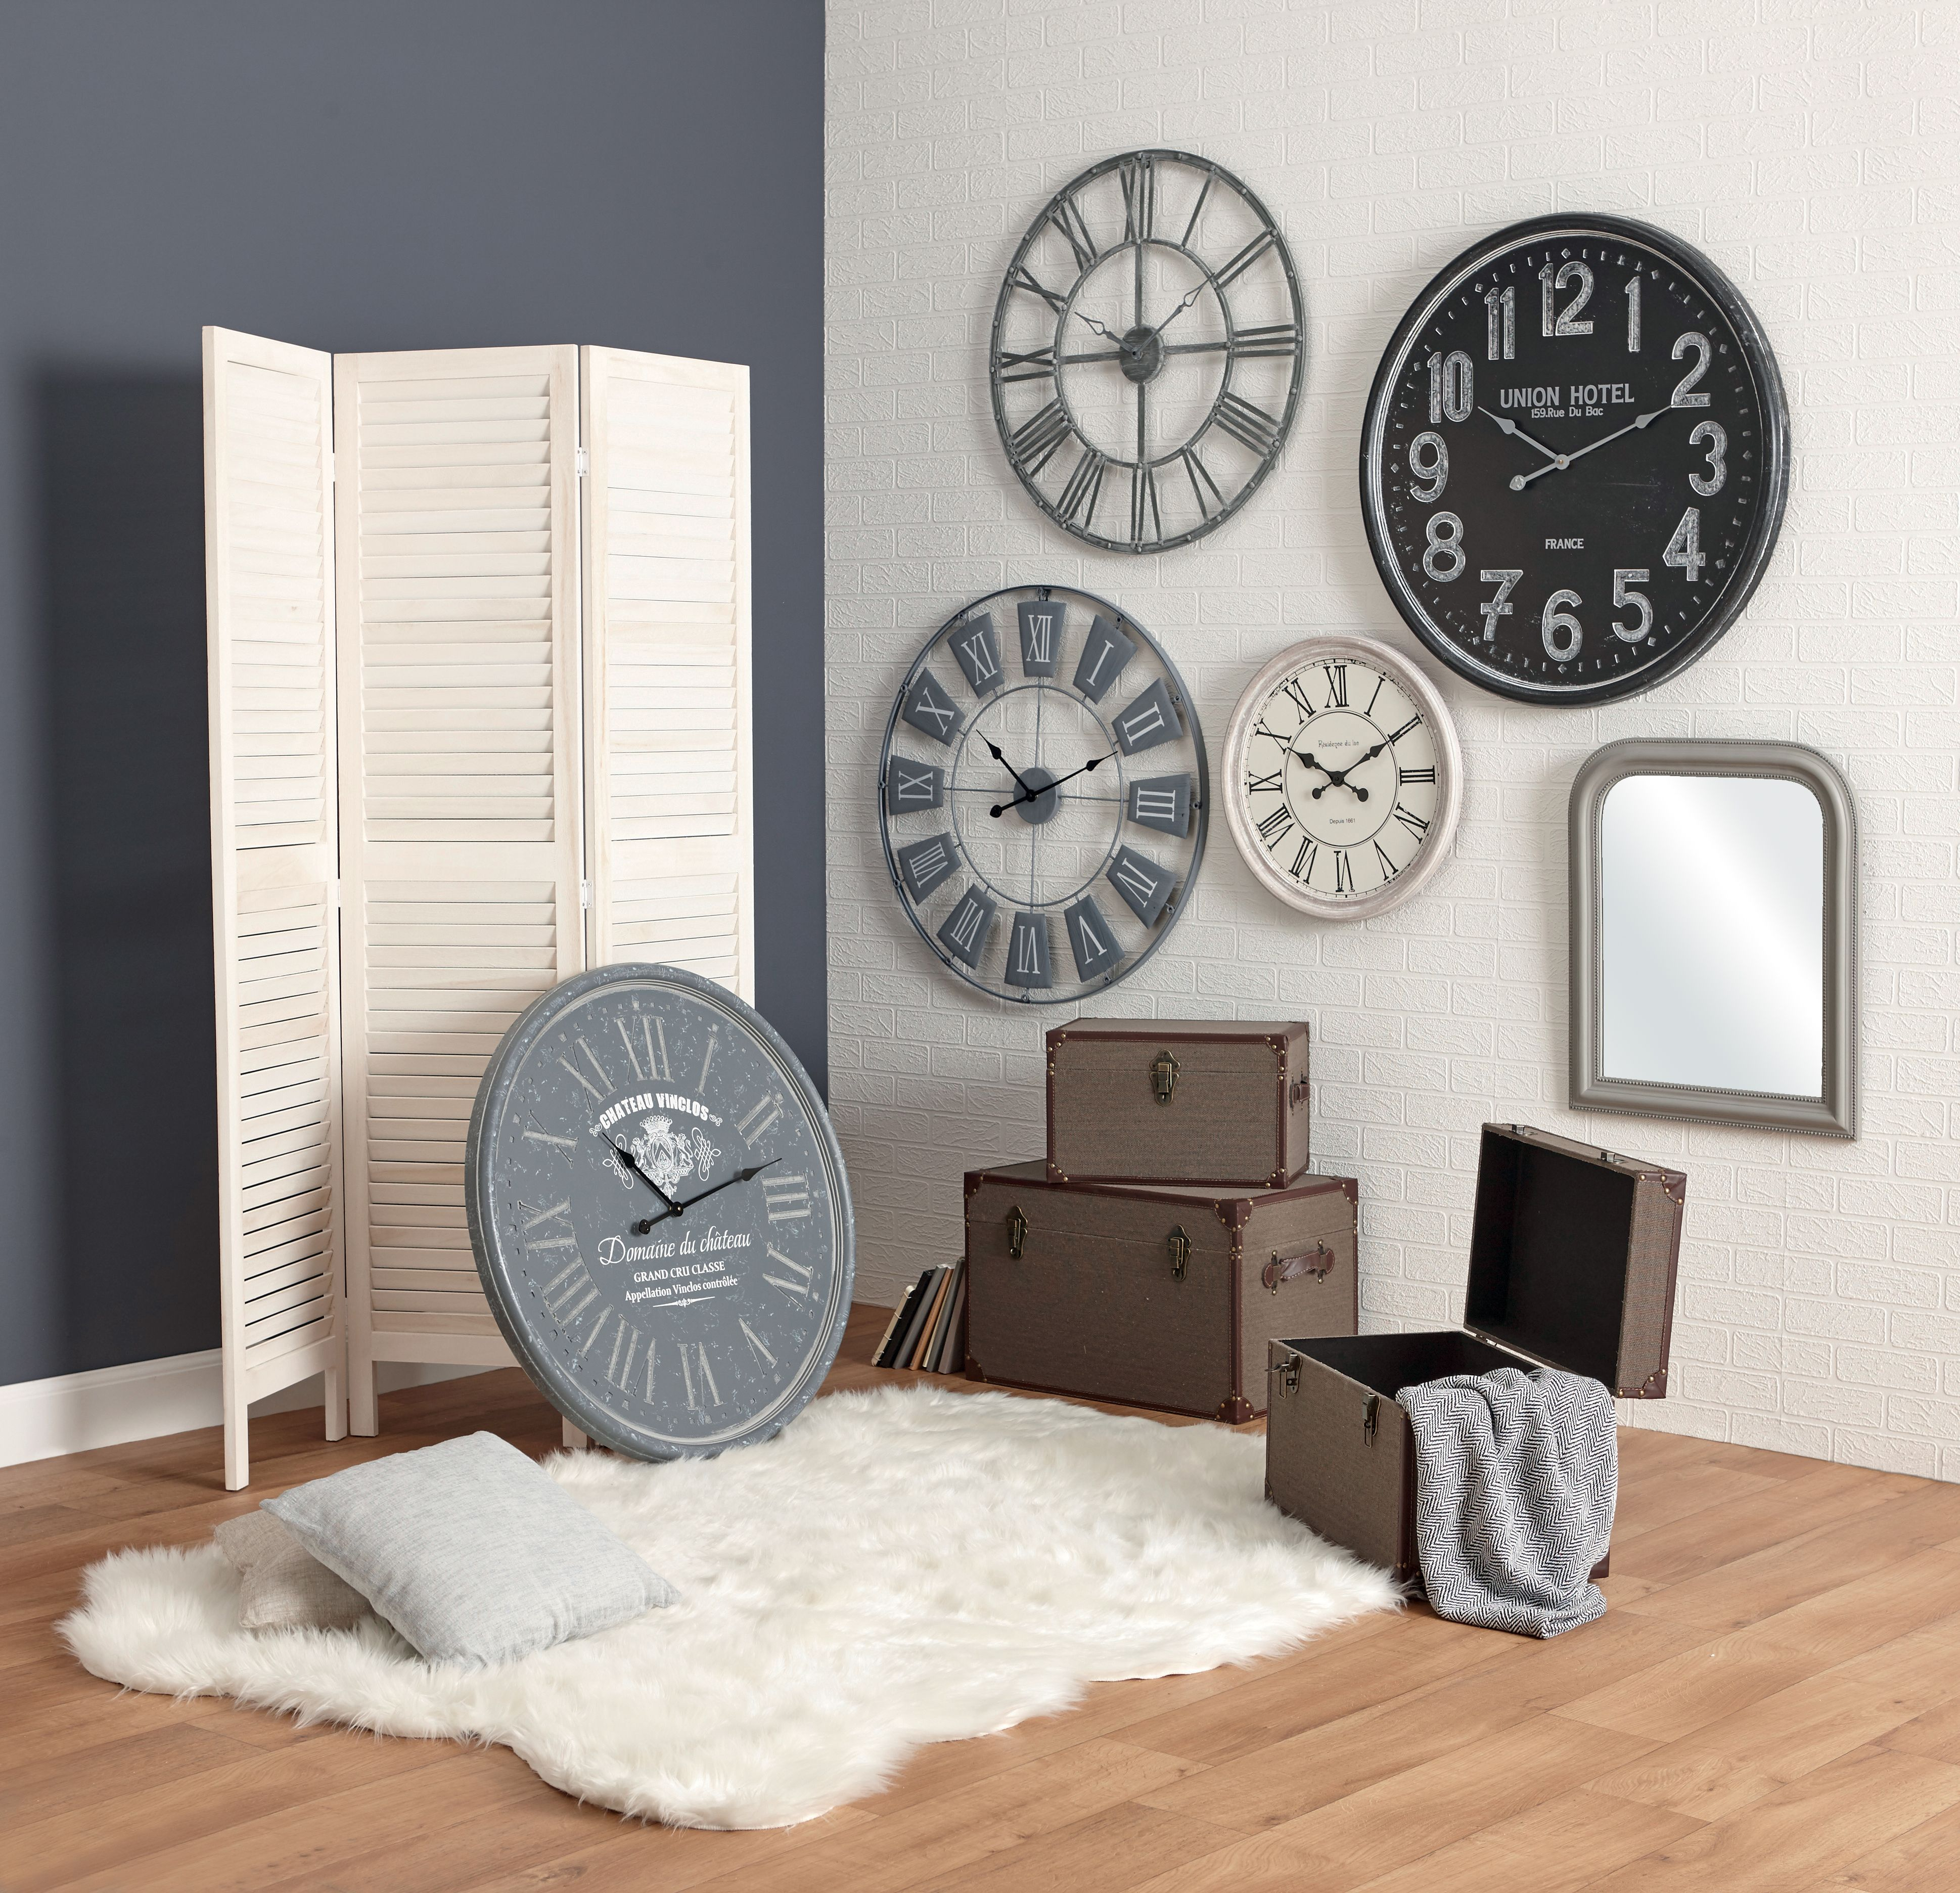 salon avec tapis et horloges centrakor mes meubles et ma d co pinterest horloge tapis et. Black Bedroom Furniture Sets. Home Design Ideas